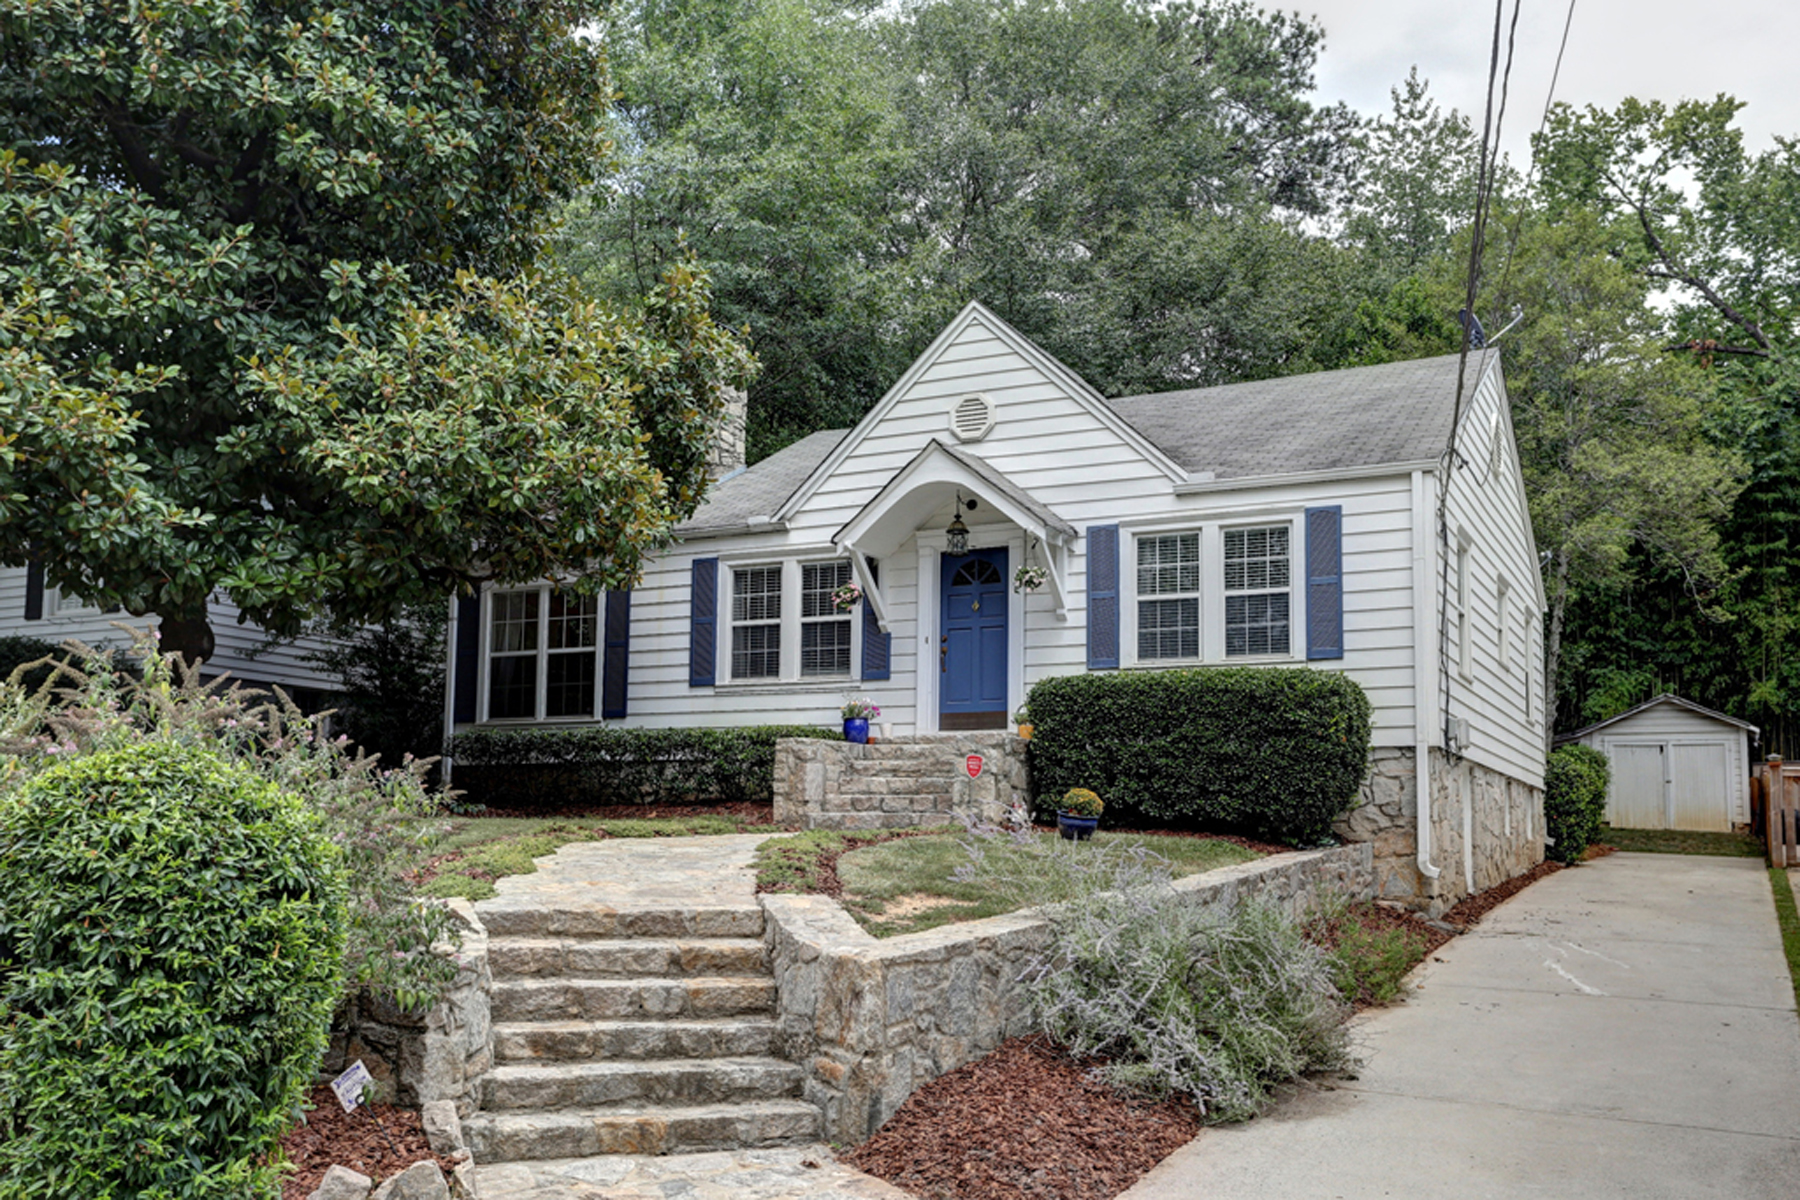 Single Family Home for Sale at Super Cute Peachtree Hills Bungalow 2279 Stephen Long Drive NE Peachtree Hills, Atlanta, Georgia, 30305 United States